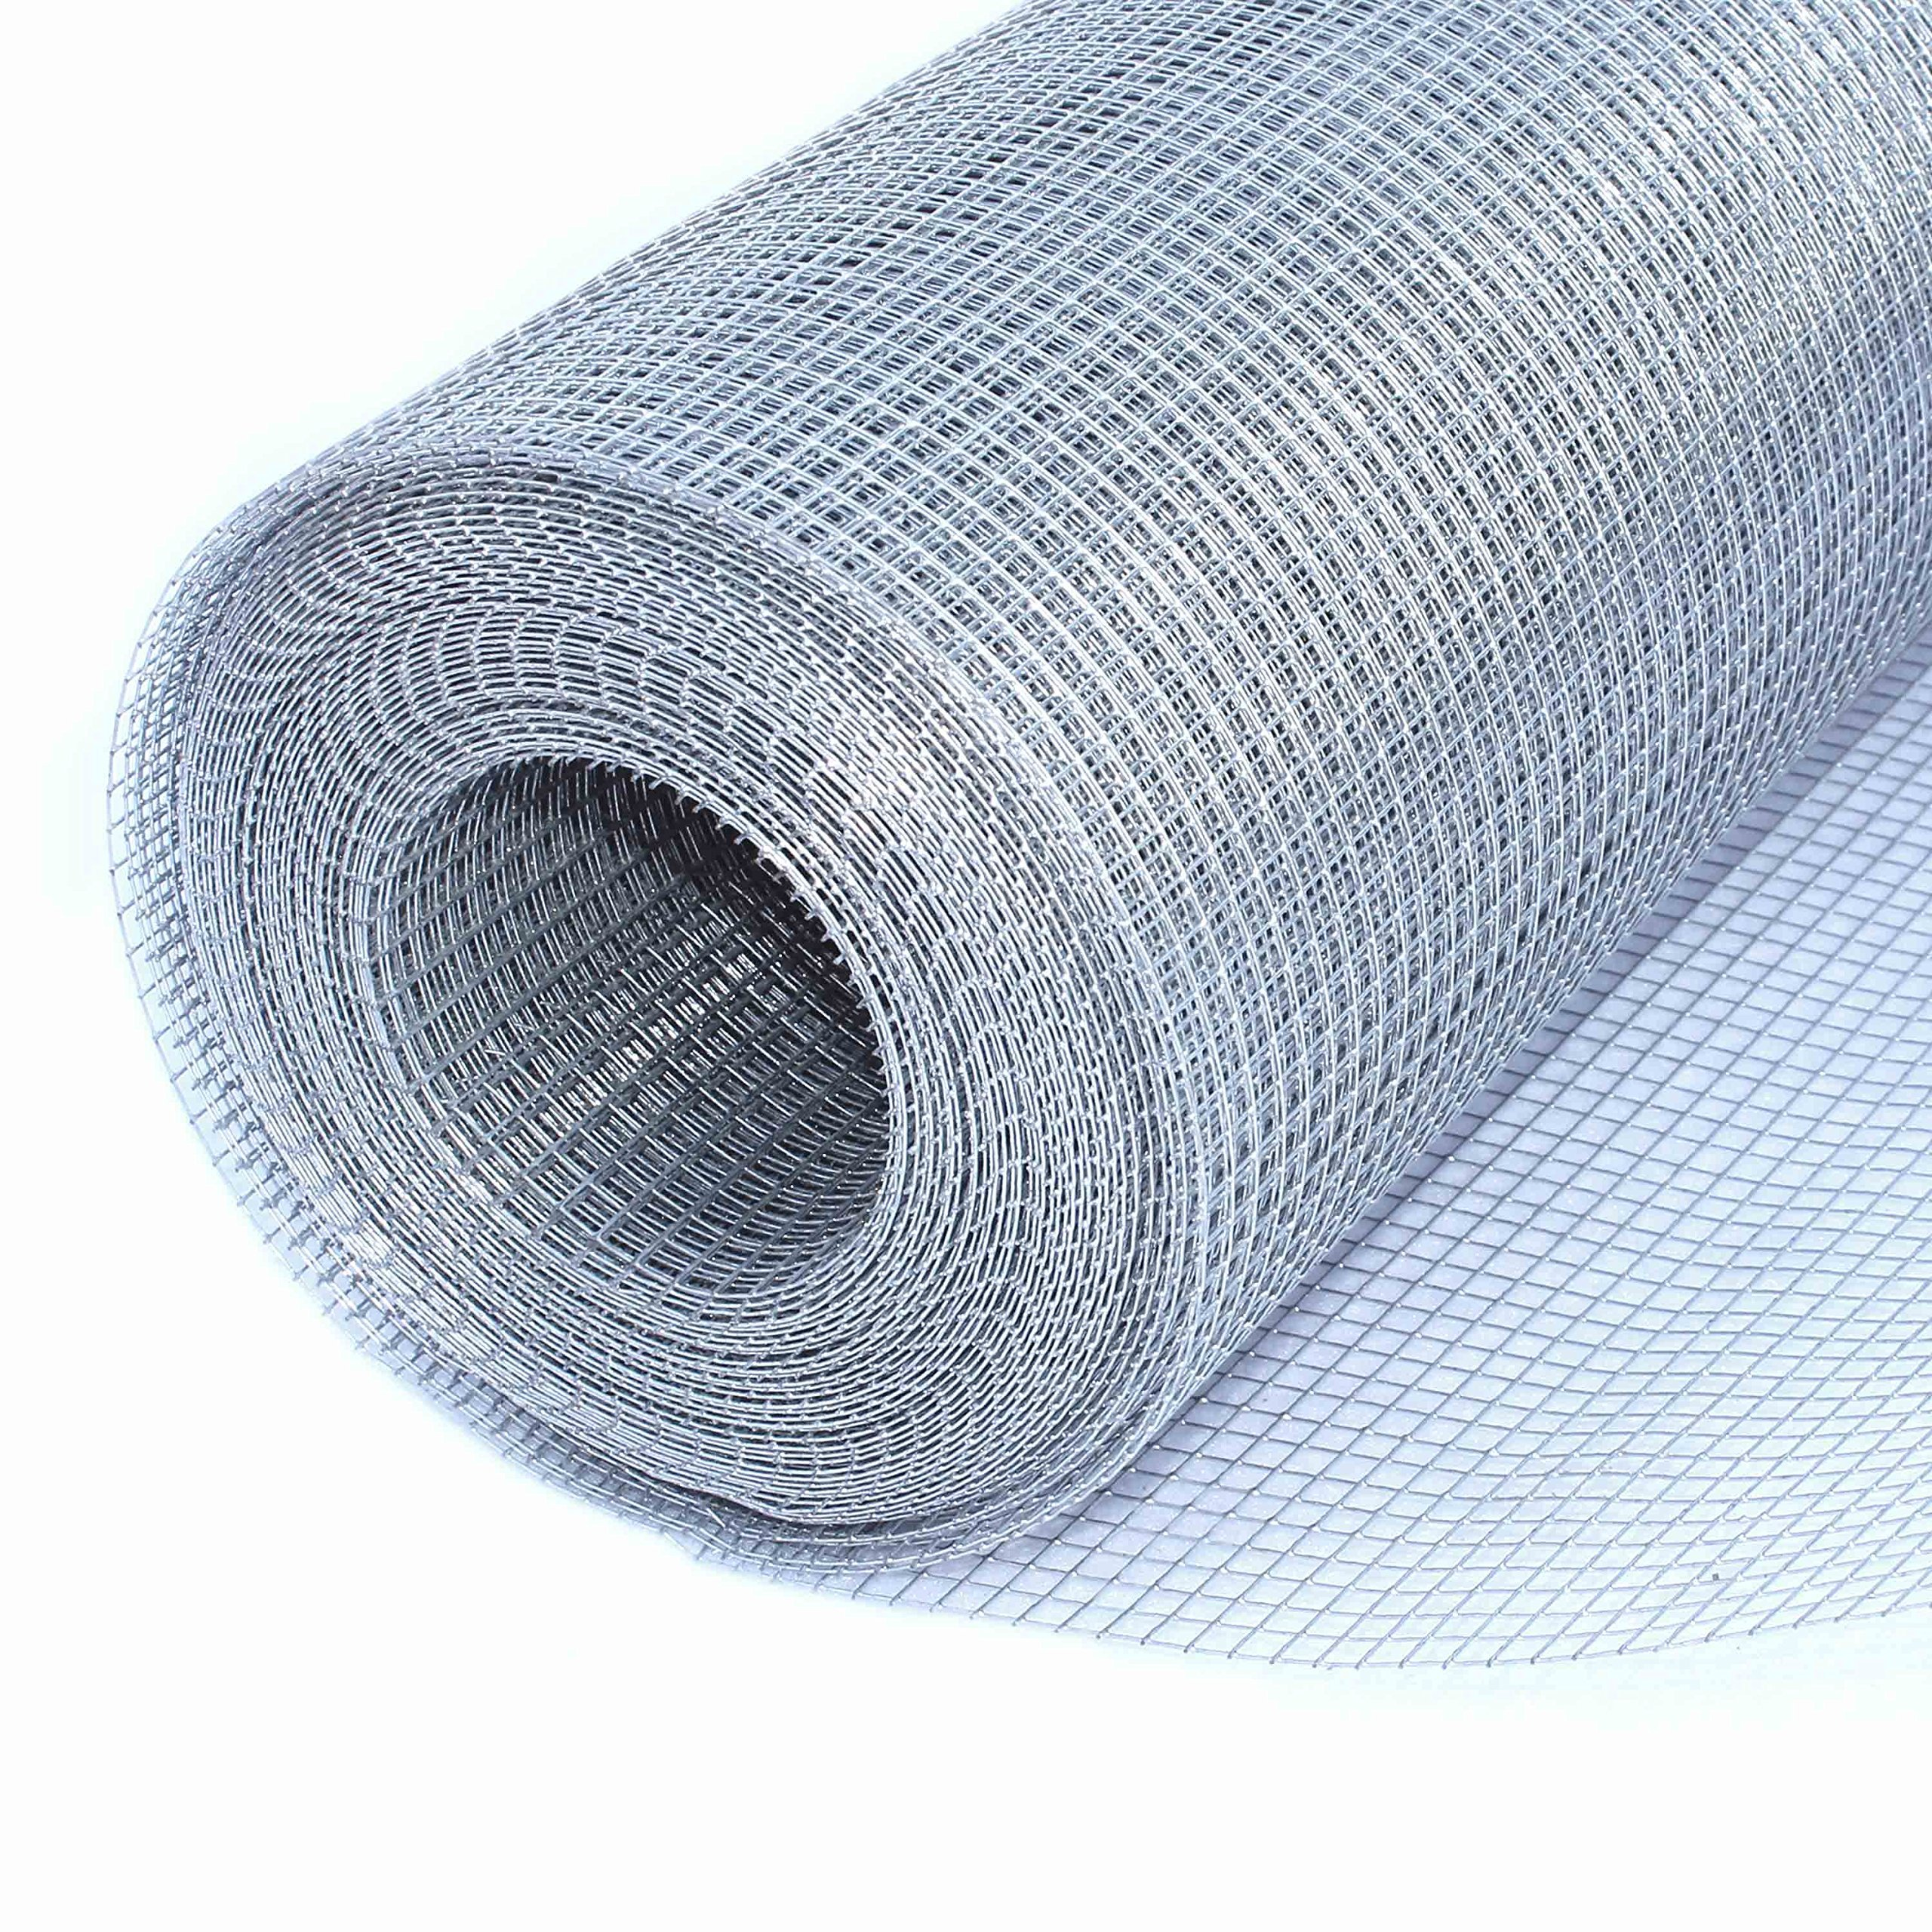 Cheap 6x6 10 Gauge Wire Mesh, find 6x6 10 Gauge Wire Mesh deals on ...